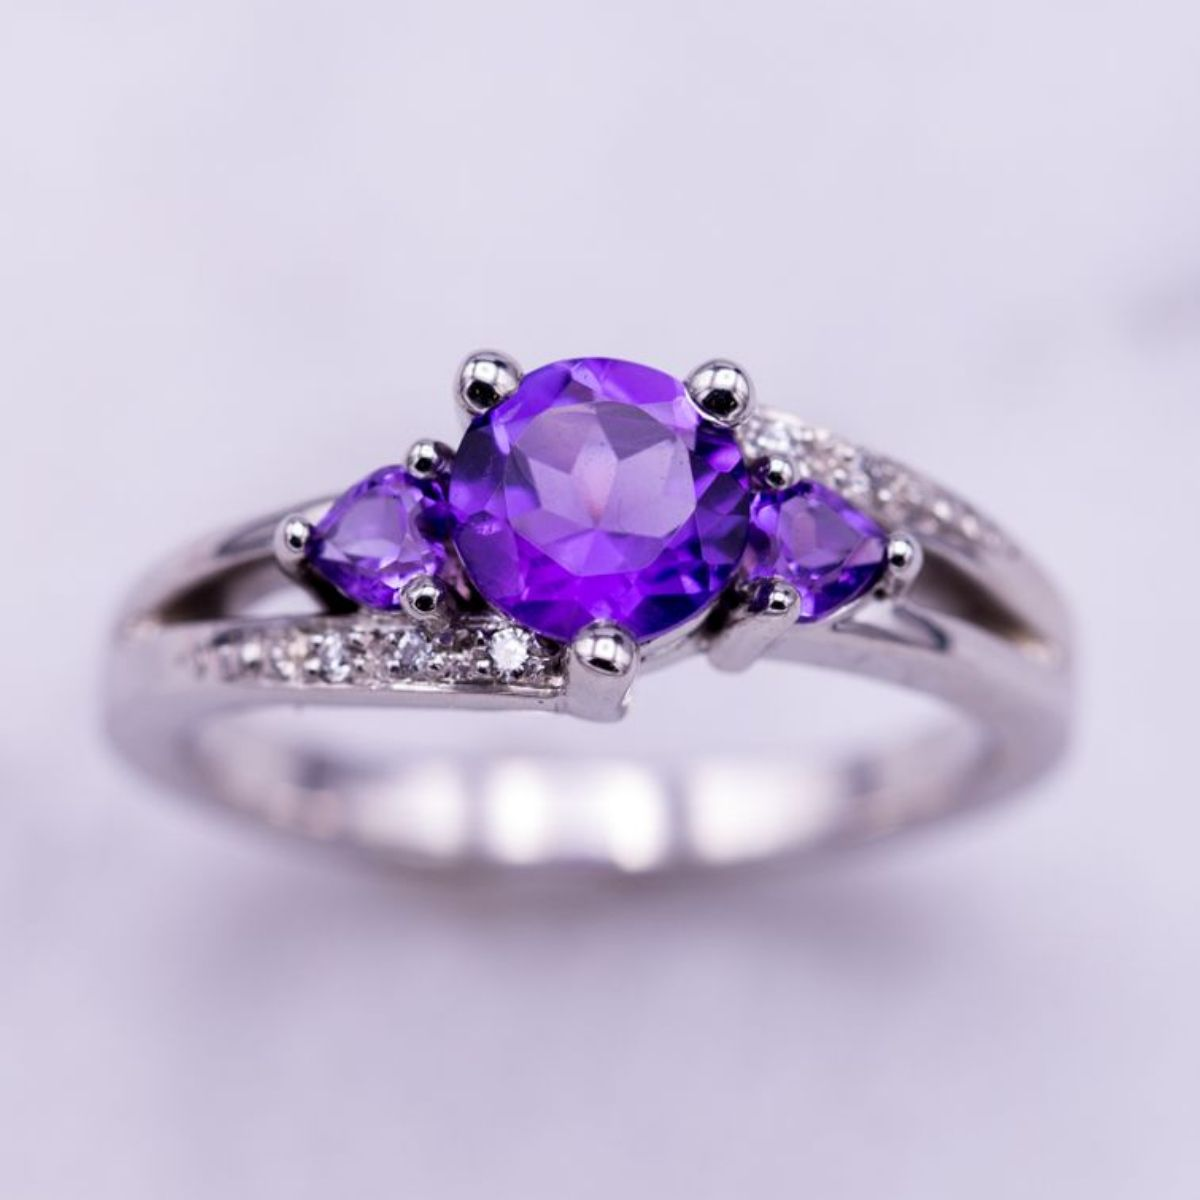 nl price purple topaz artistic wg white stone reasonable rings at set in gold diamond wedding bar row with jewelry ring fascinating pear violac engagement